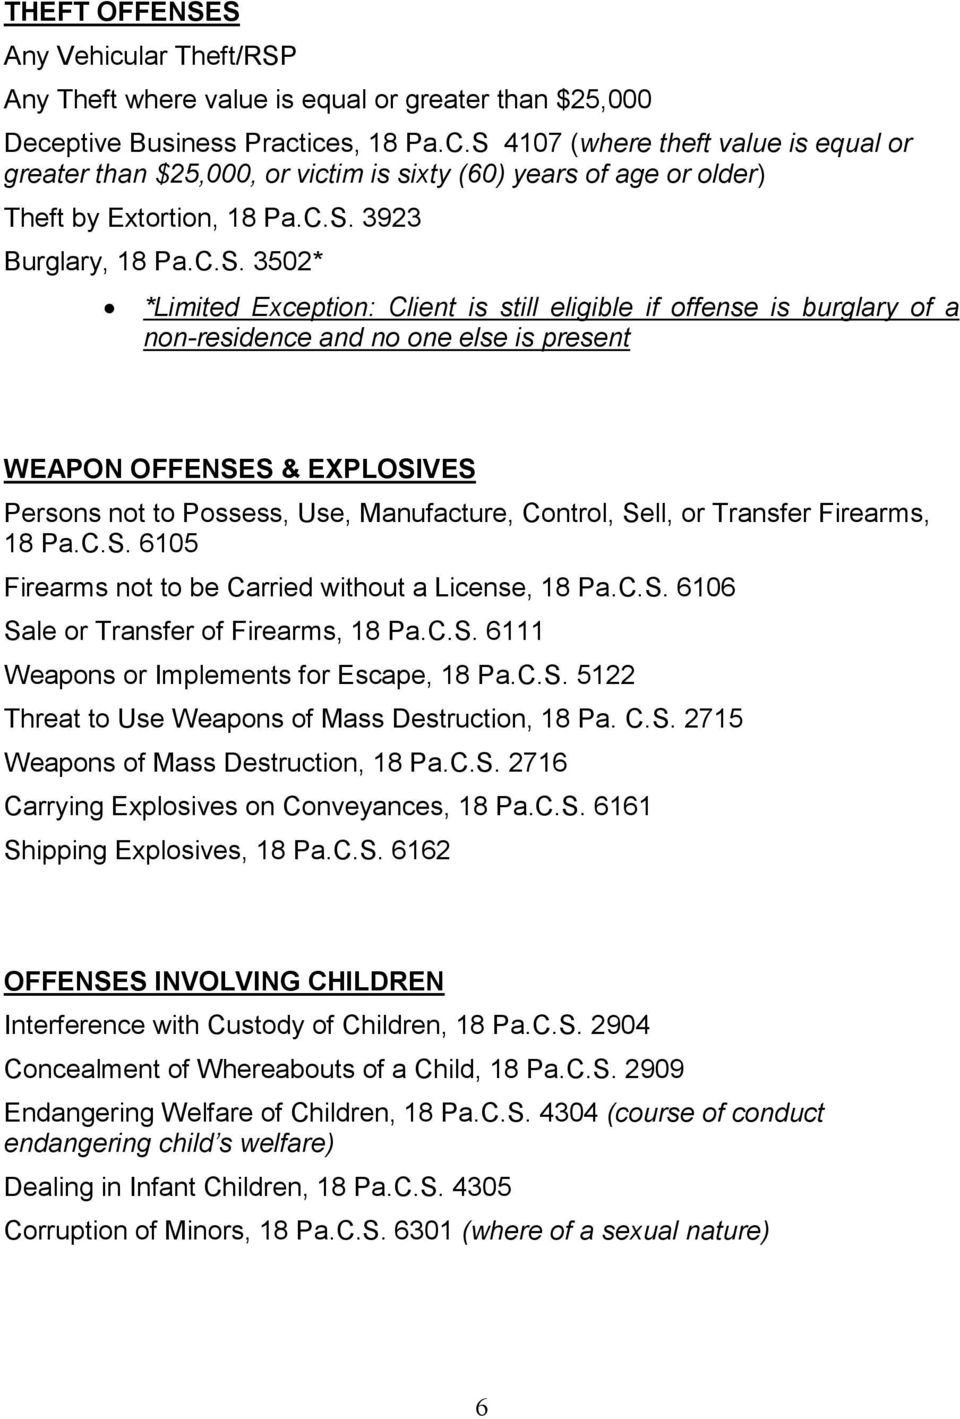 still eligible if offense is burglary of a non-residence and no one else is present WEAPON OFFENSES & EXPLOSIVES Persons not to Possess, Use, Manufacture, Control, Sell, or Transfer Firearms, 18 Pa.C.S. 6105 Firearms not to be Carried without a License, 18 Pa.